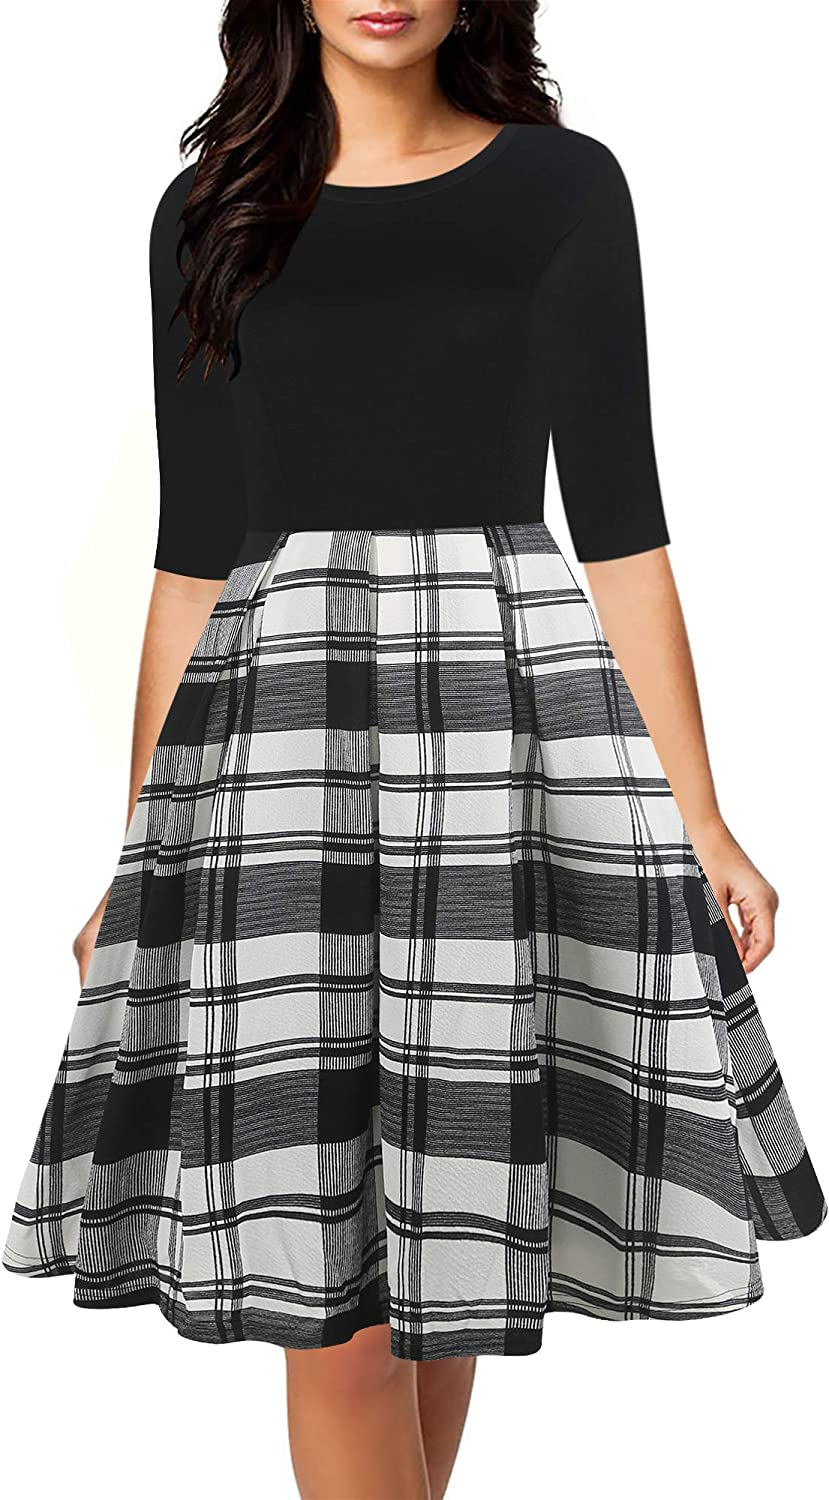 oxiuly Womens Long Sleeve Round Neck Casual Pockets Cocktail Party Dress OX253